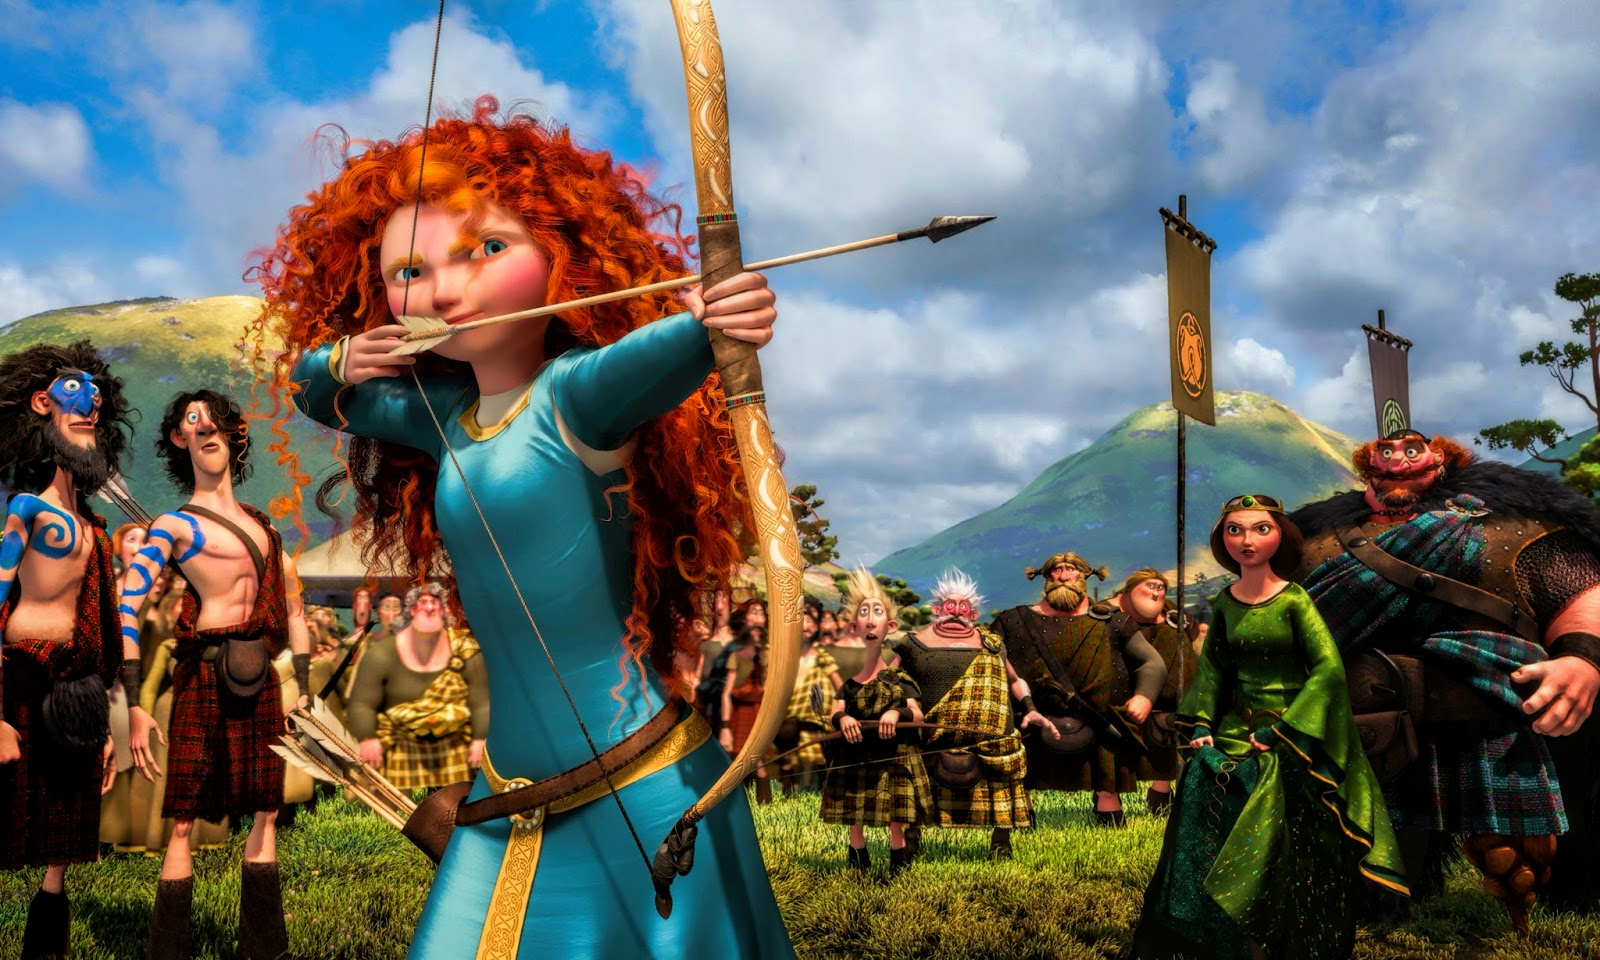 Brave Movie Hd Wallpapers Hd Wallpapers High Definition